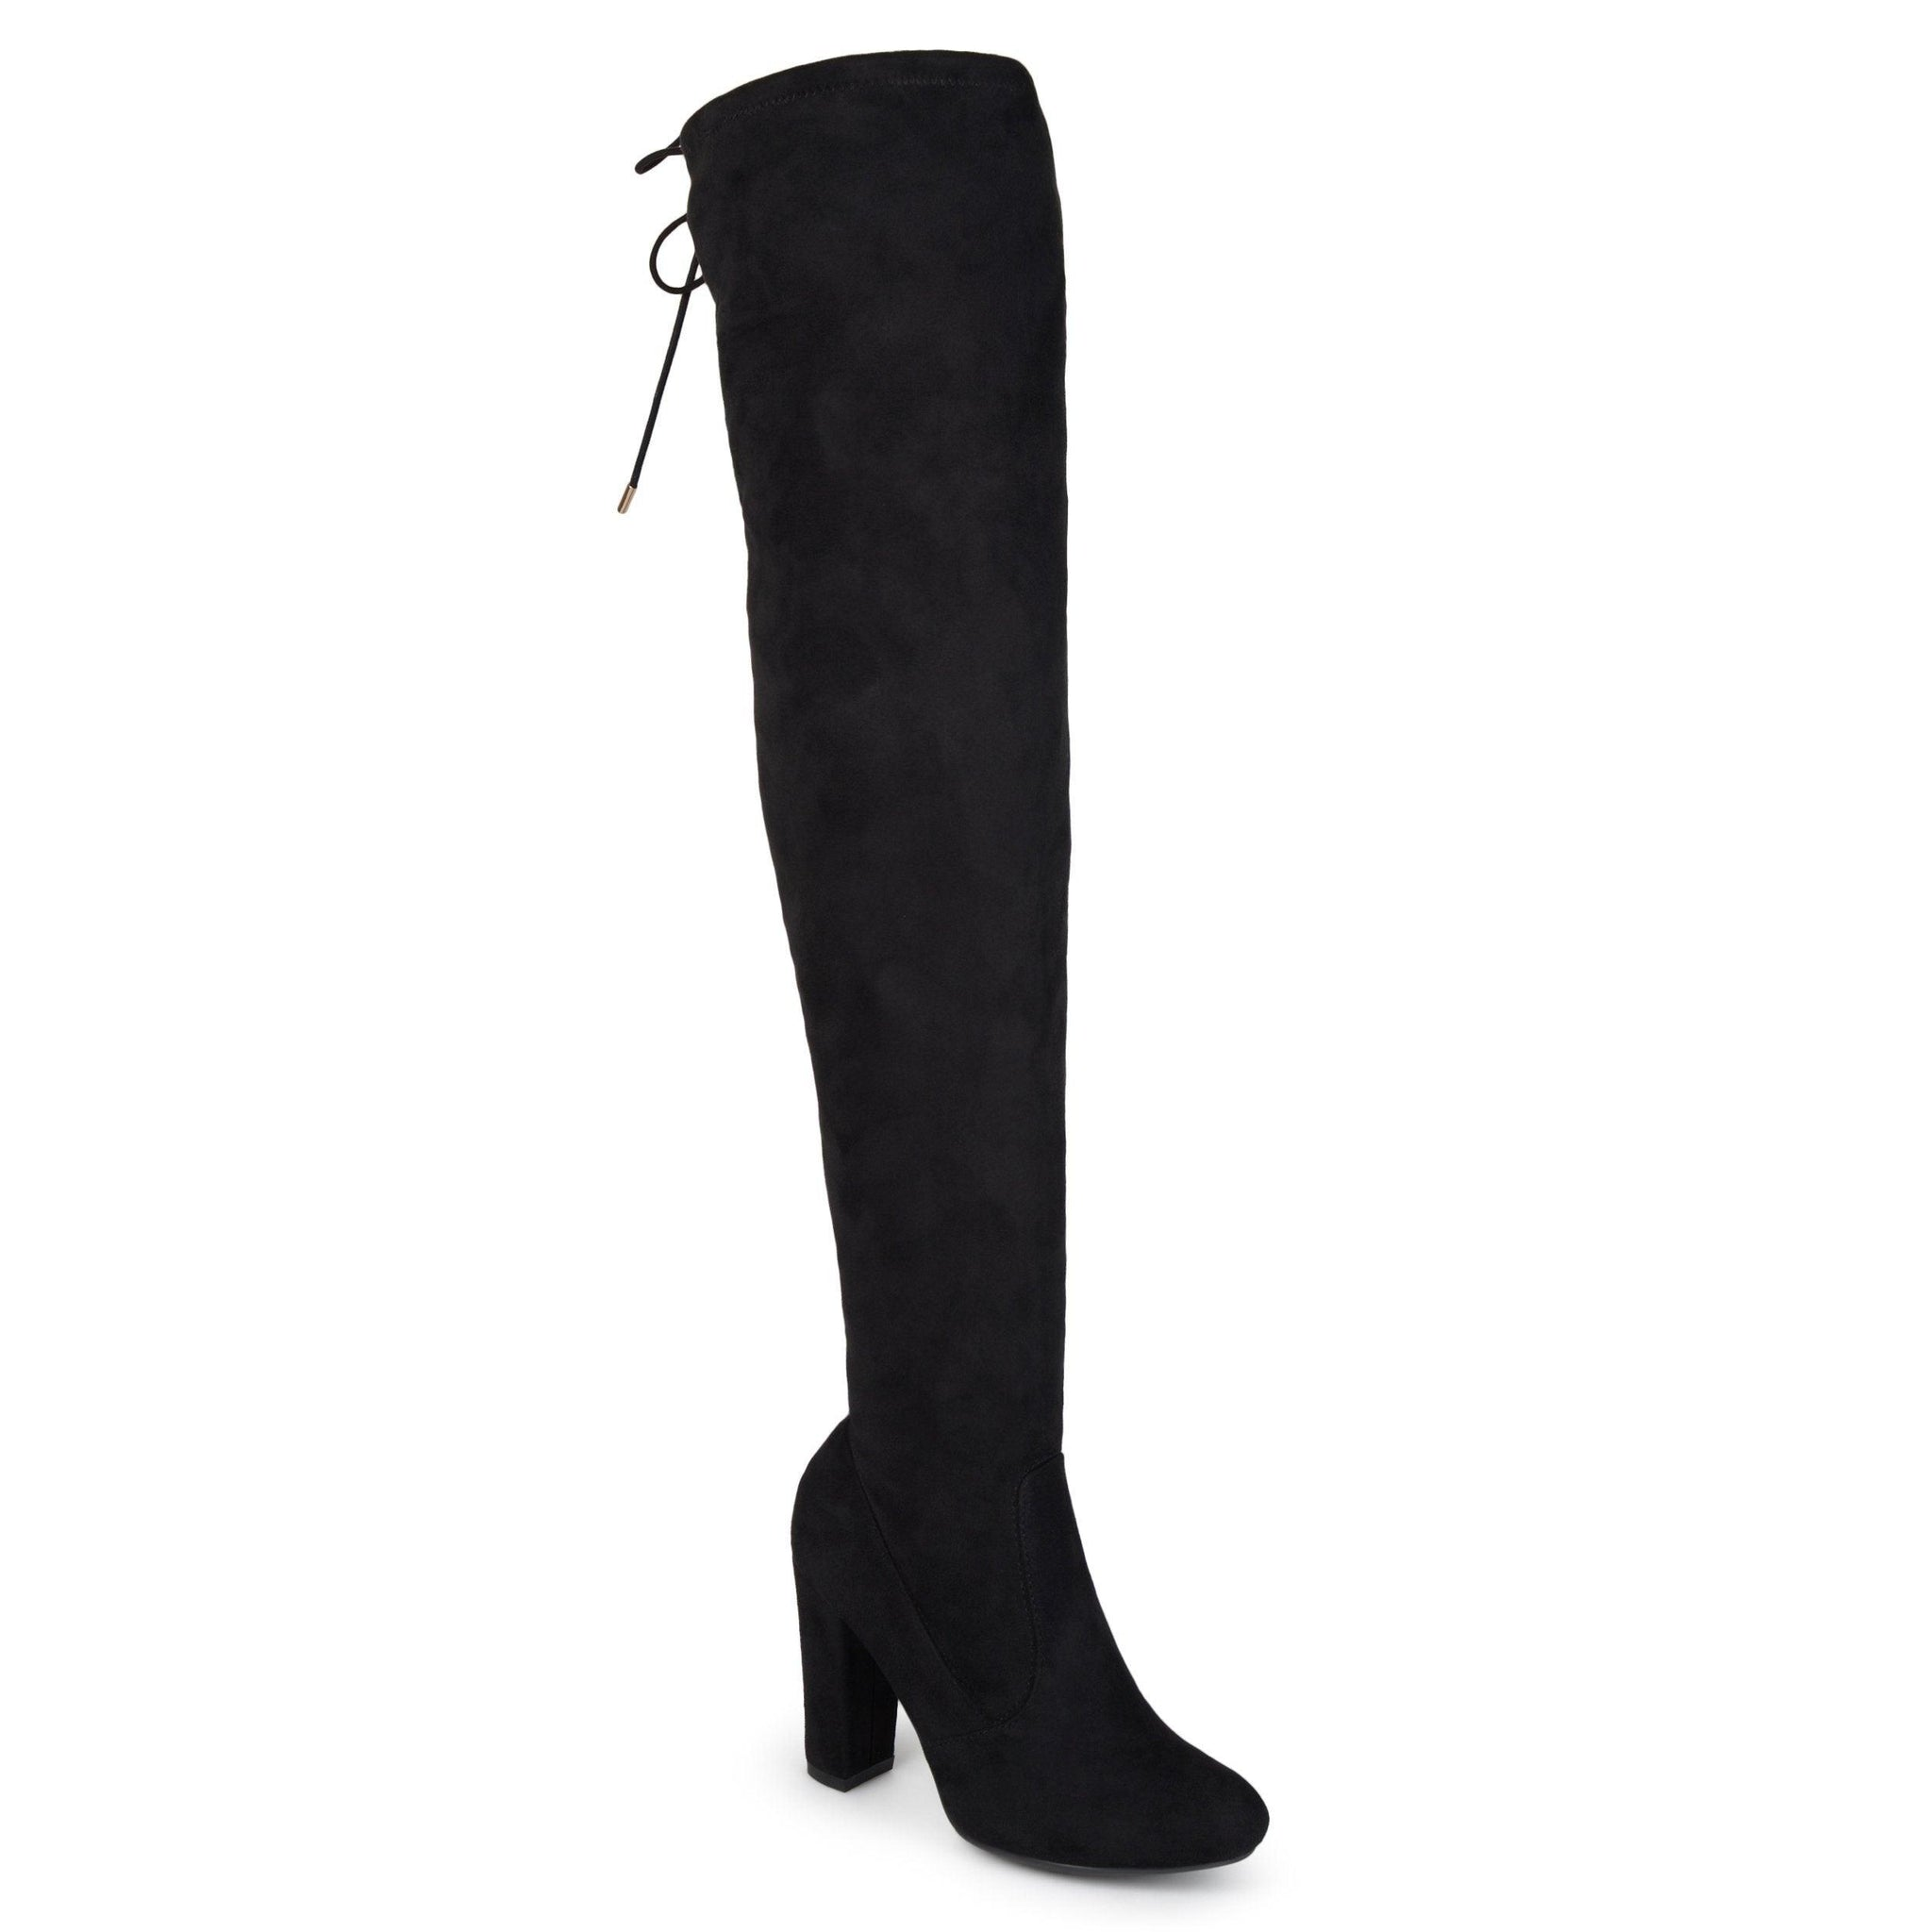 Details about  /Women/'s Journee Collection Women/'s Taven Boot Black